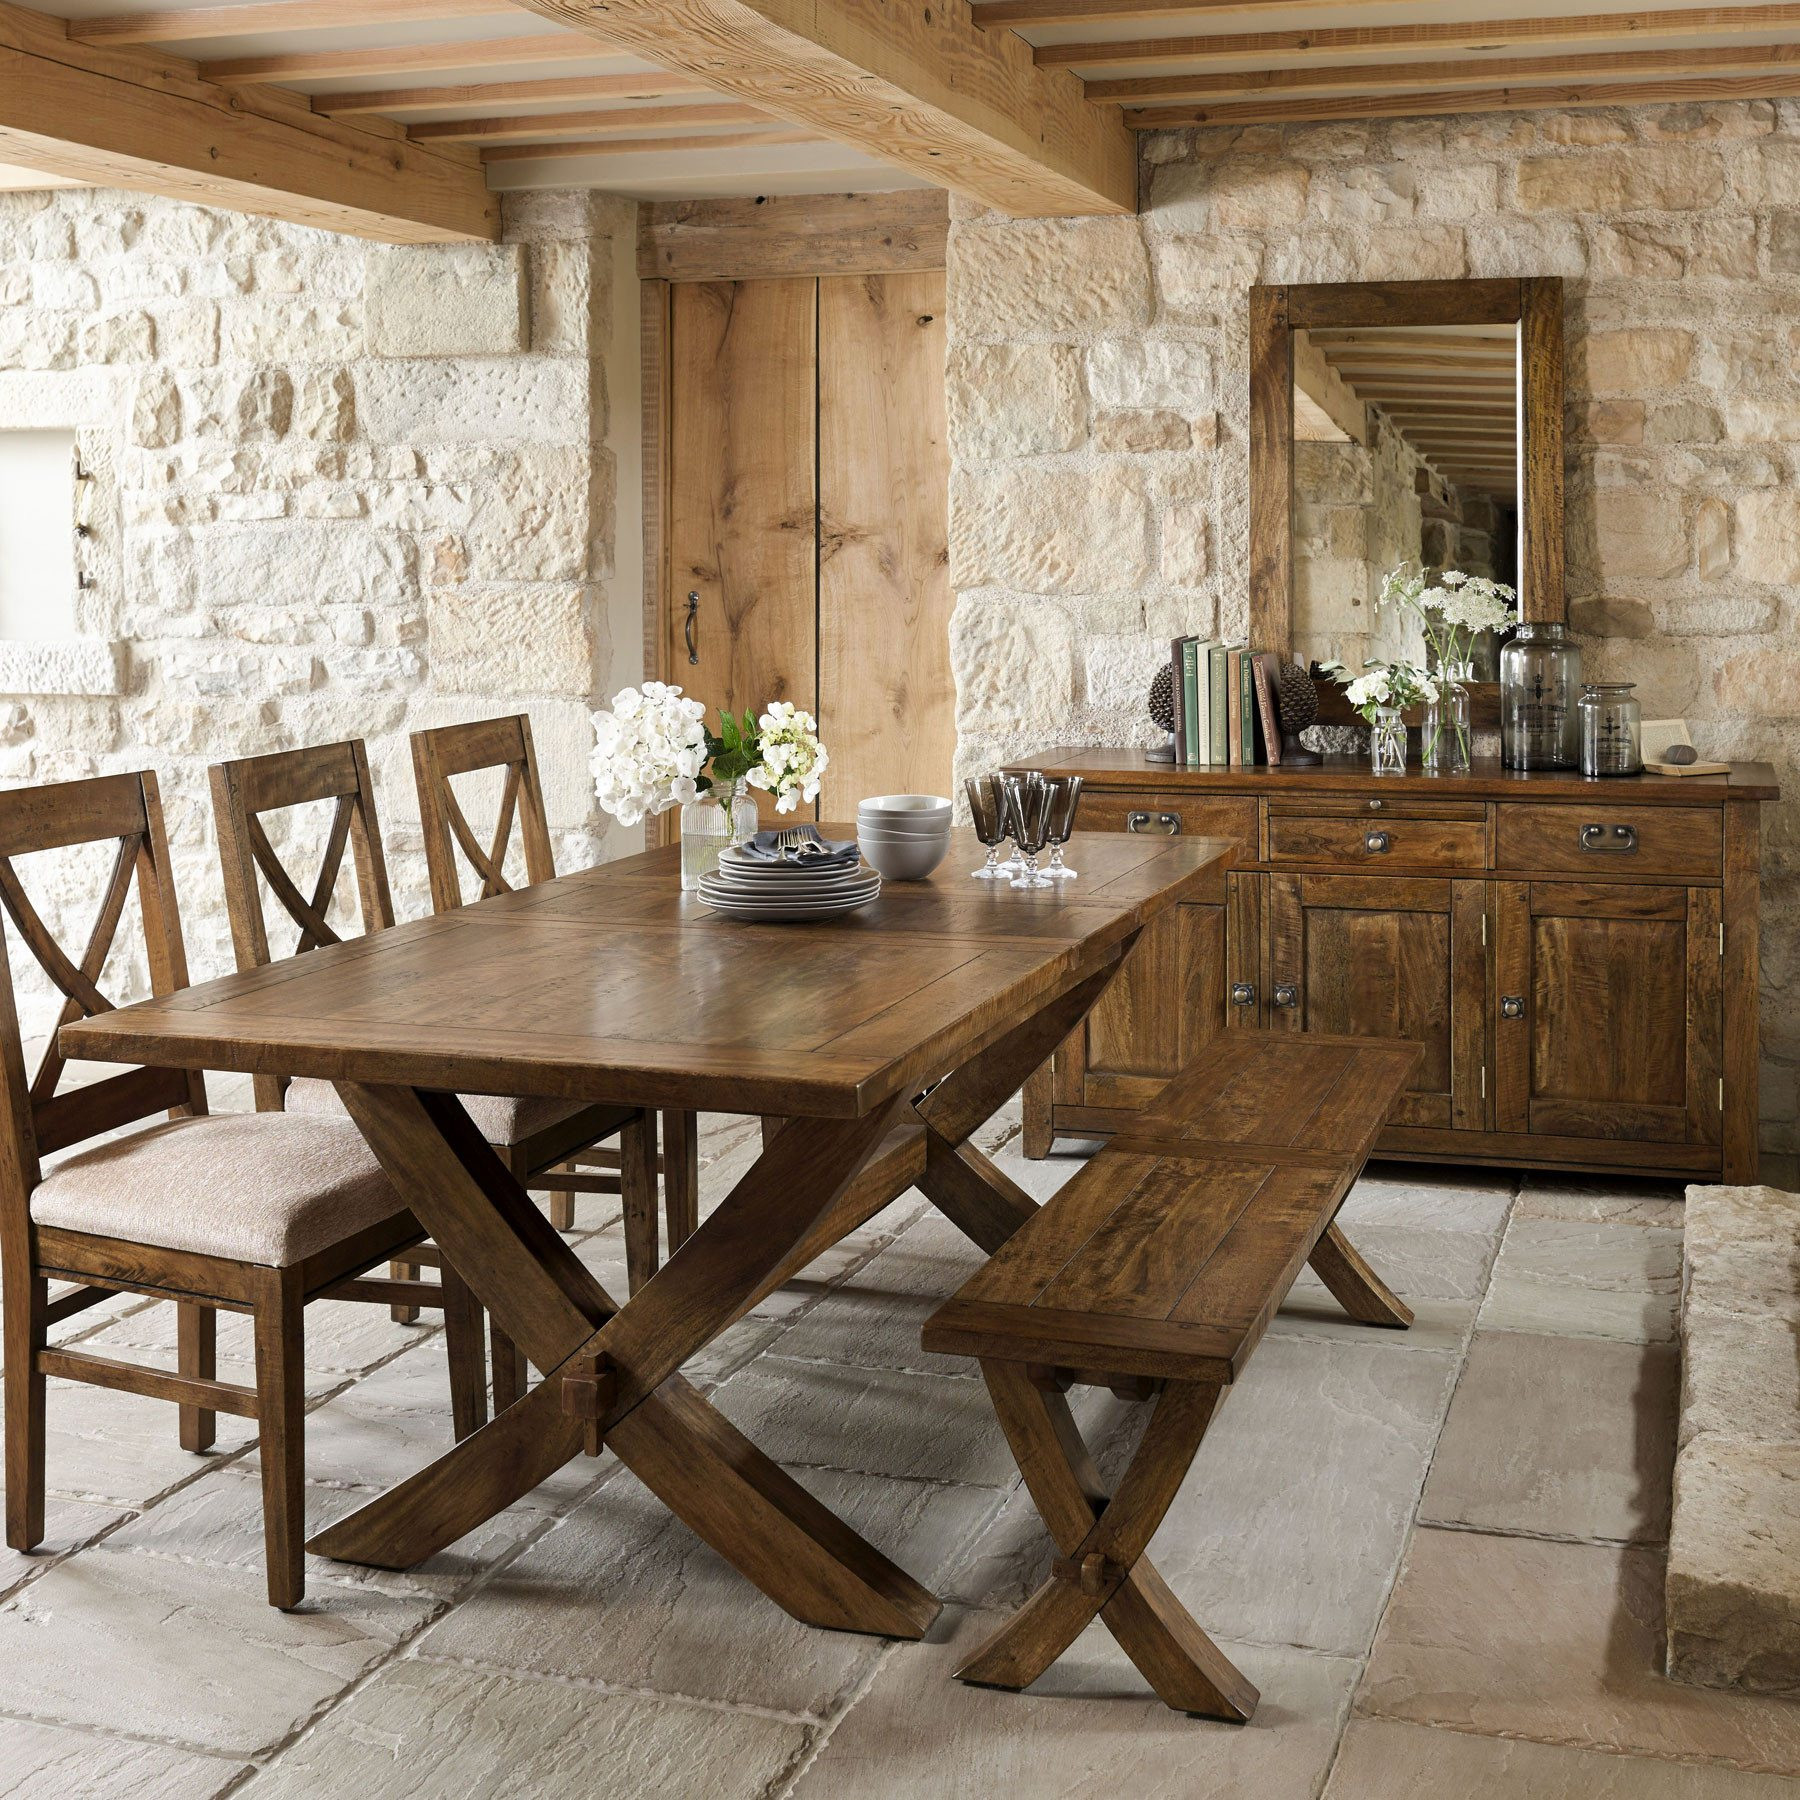 Best ideas about Wood Dining Table . Save or Pin Axbridge Mango Wood Extending X Leg Dining Table & 6 Chairs Now.